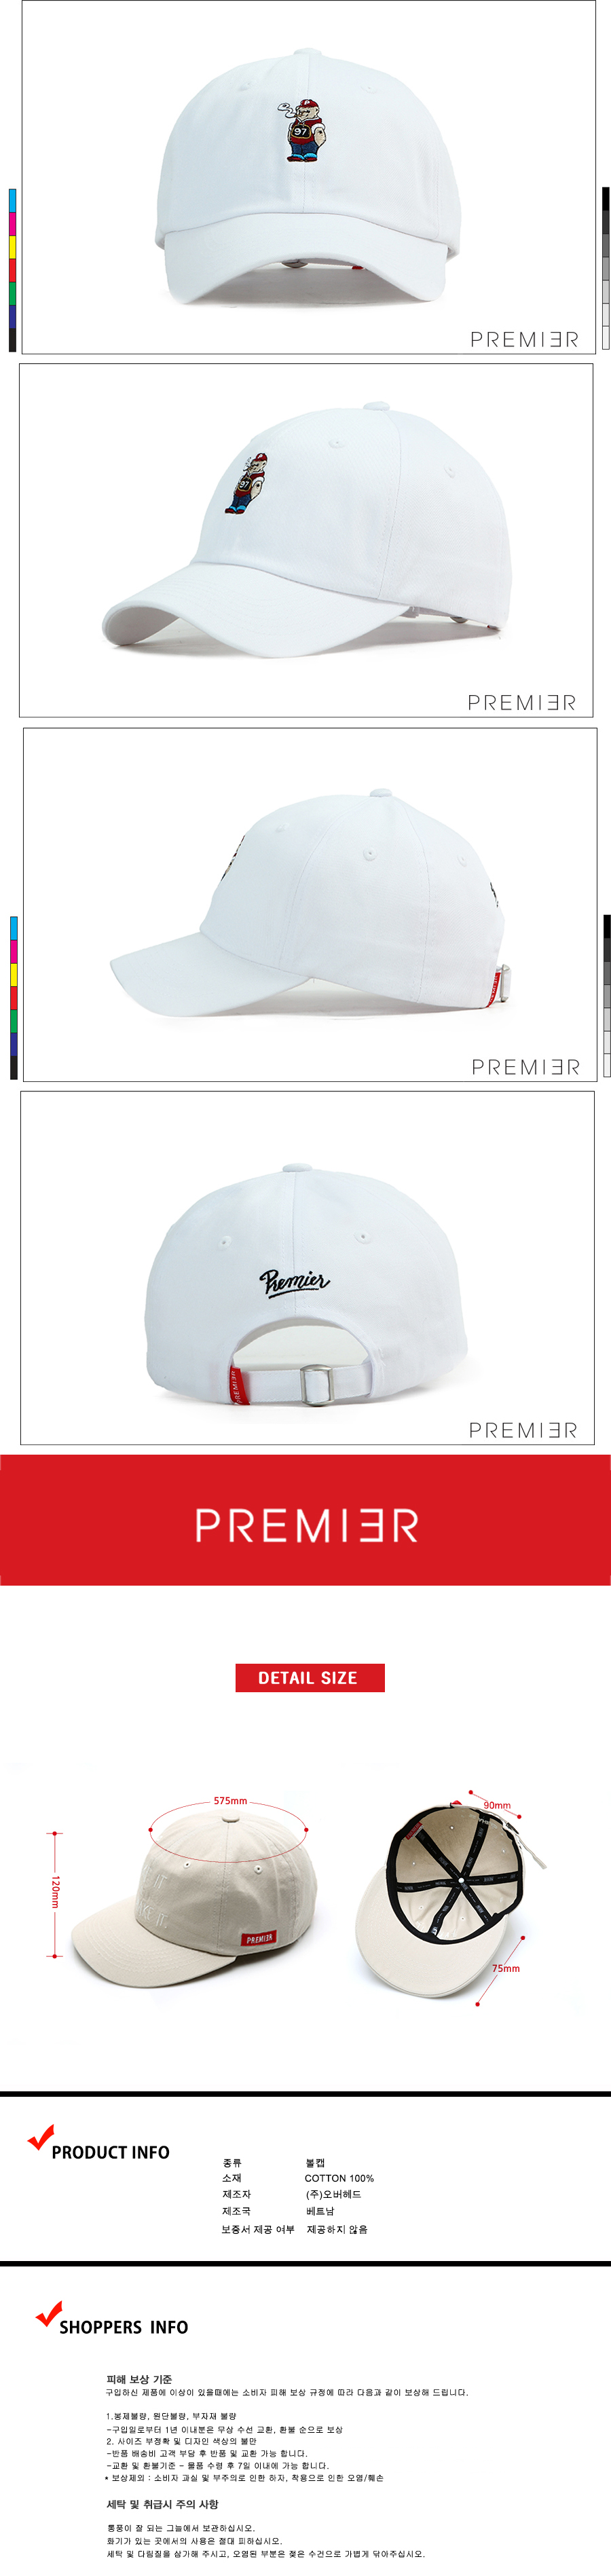 [ PREMIER ] [Premier] Ball Cap 97 Bear White (P933)